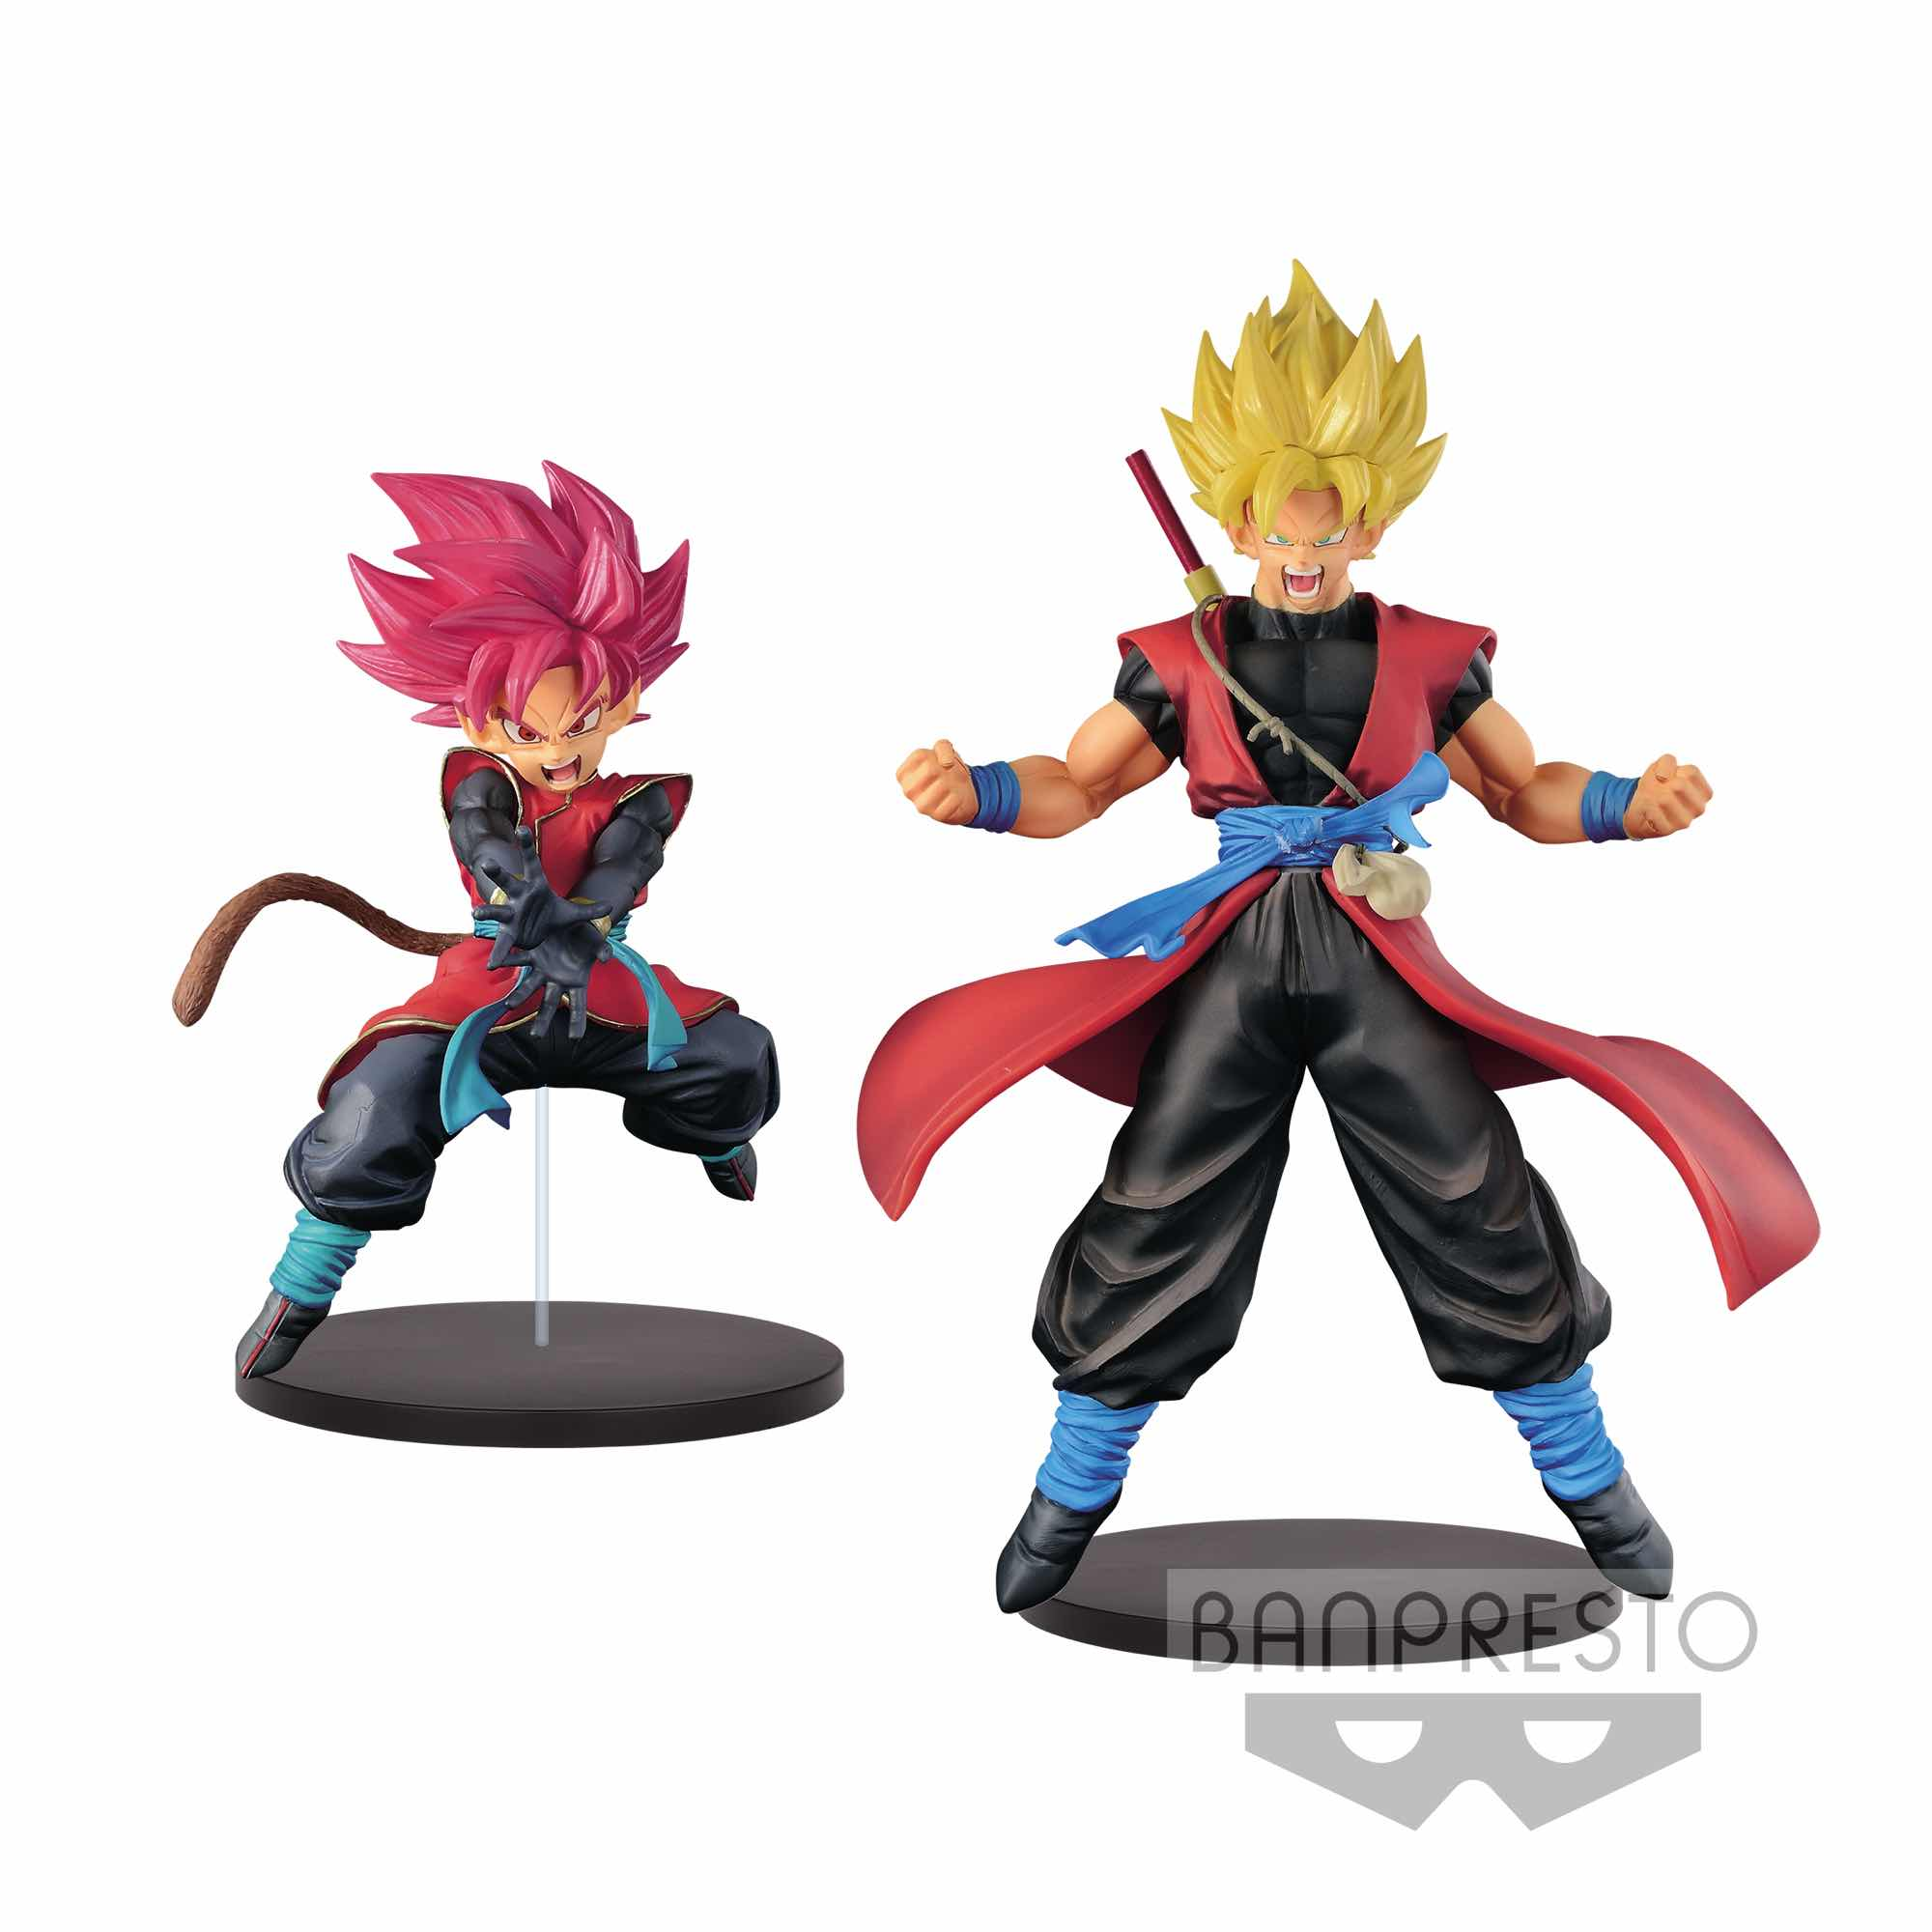 SAIYAN (CHICO) AVATAR & SON GOKU XENO SET 2 FIG 18 CM SUPER DRAGON BALL HEROES DXF